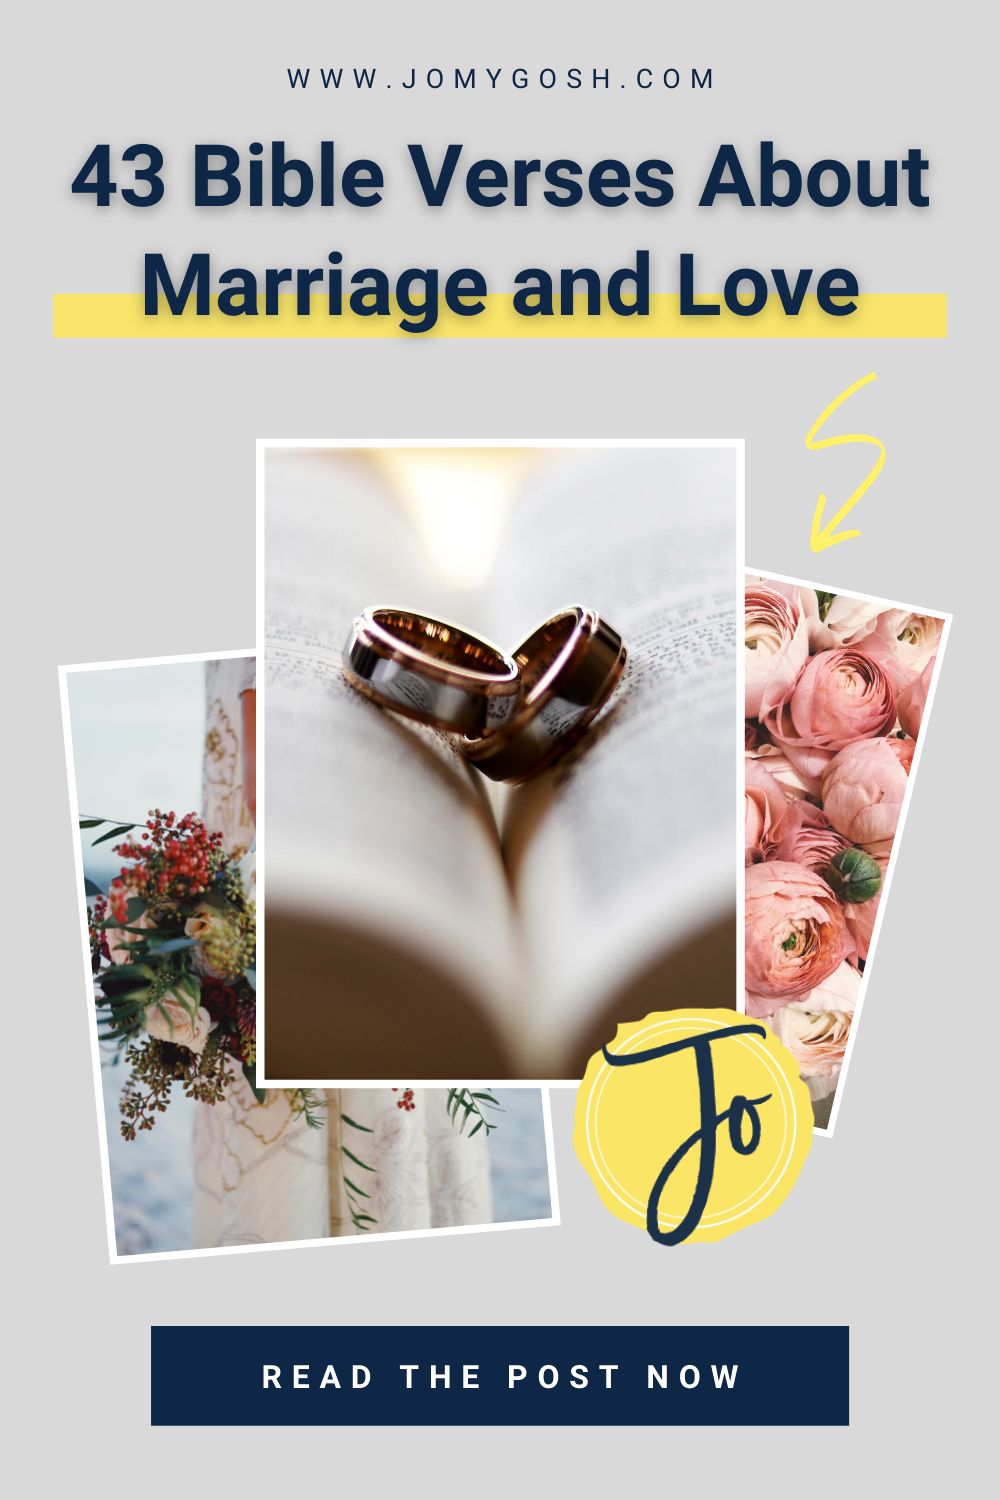 These collected Bible verses are all about marriage and love. #marriage #quotes #bible #bibleverse #wedding #love #religious #christian #christianity